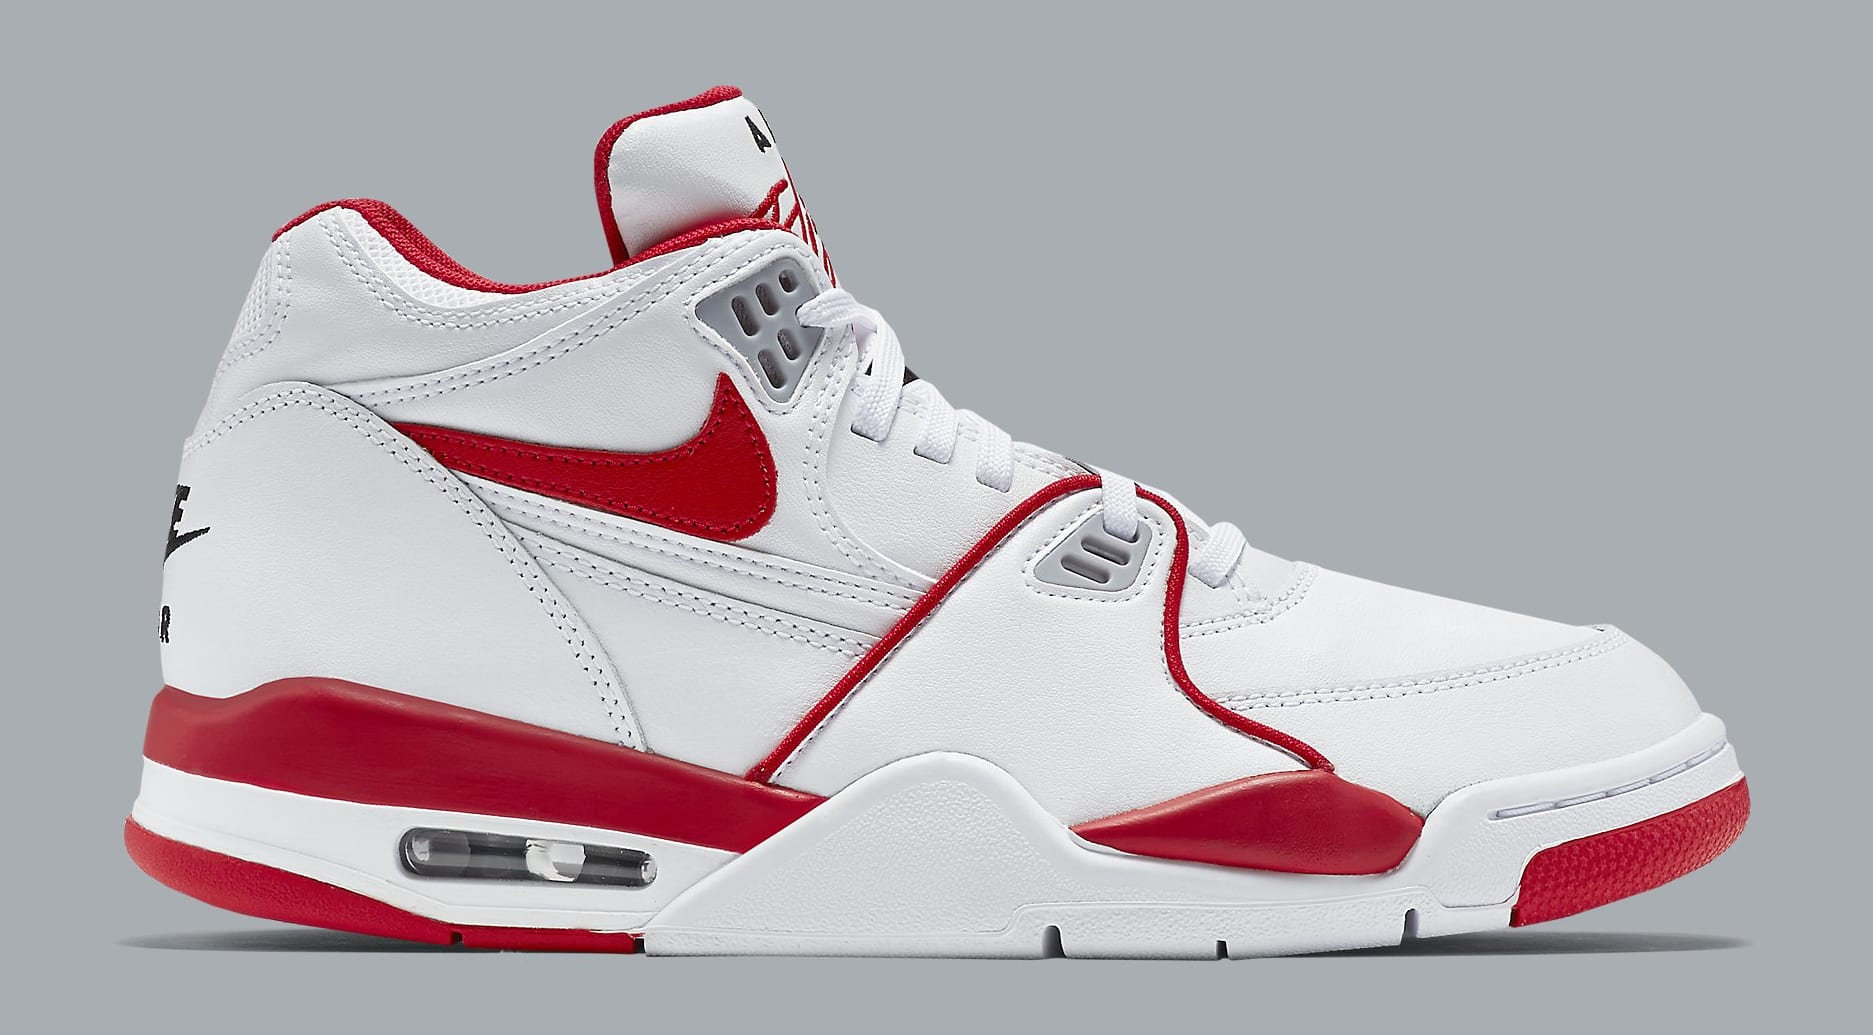 nike air flight 89 images